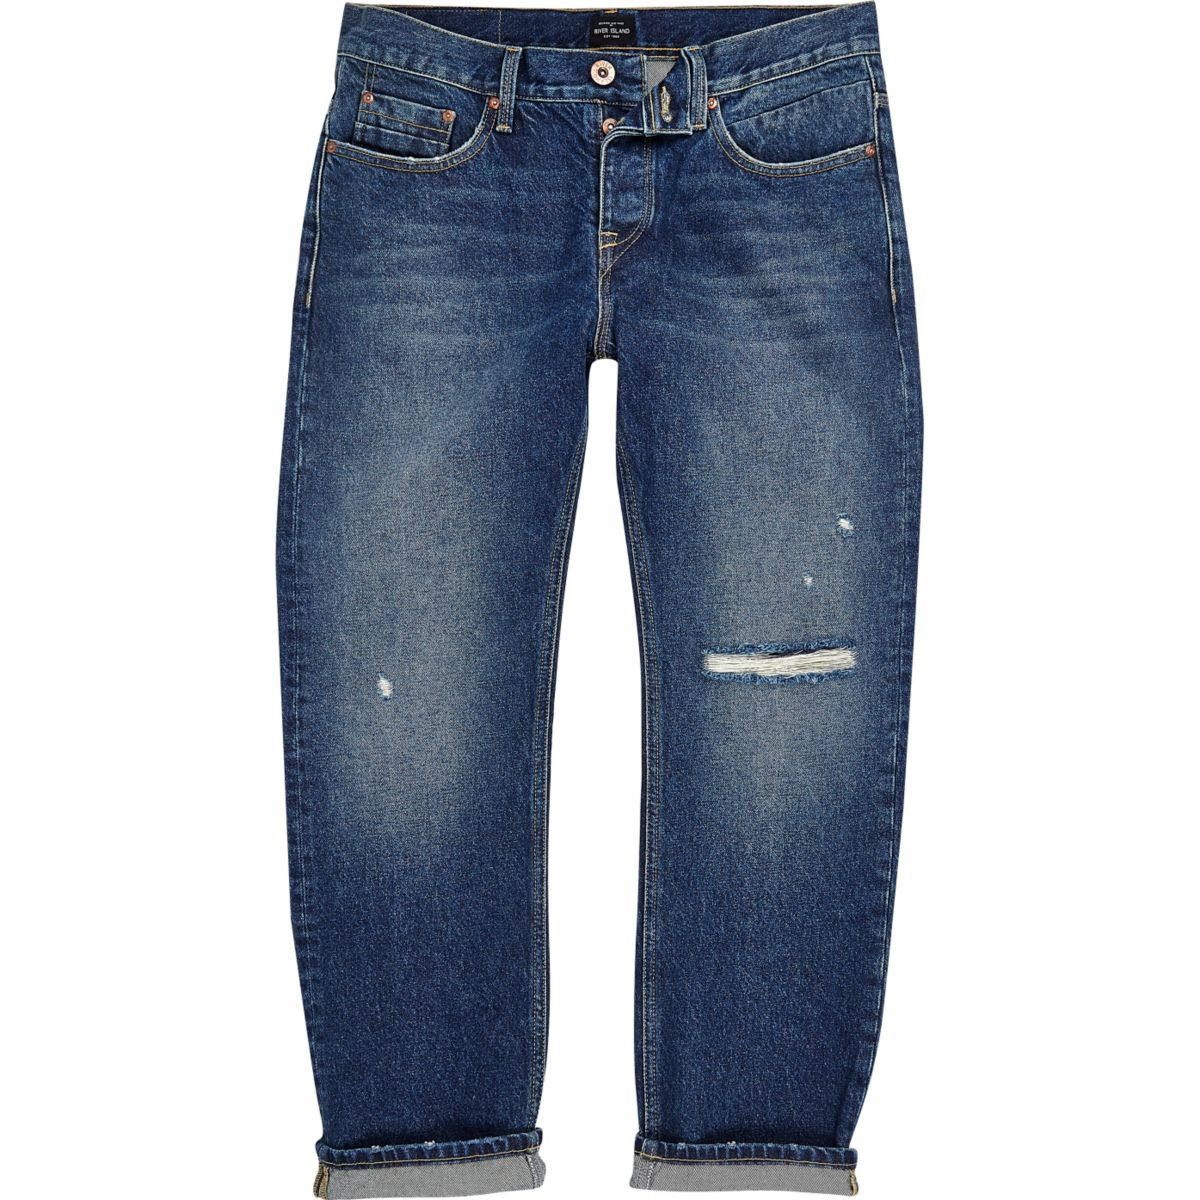 Cody – Loose Fit Jeans in blauer Waschung